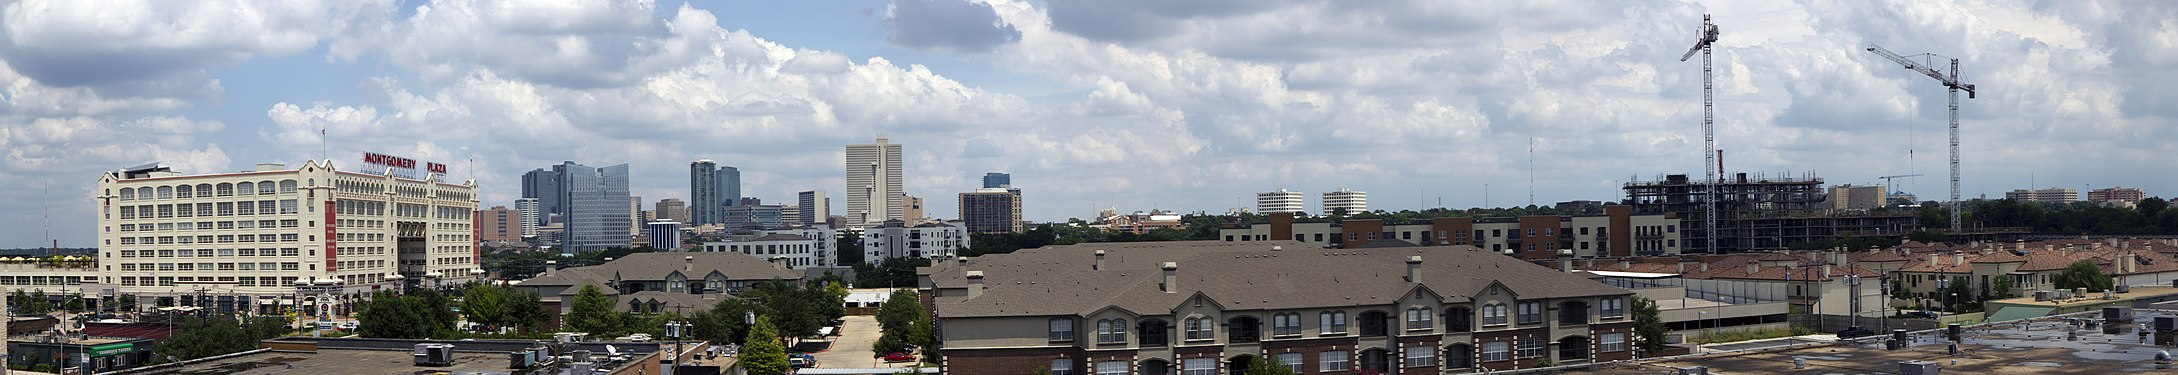 Fort Worth Skyline2.jpg